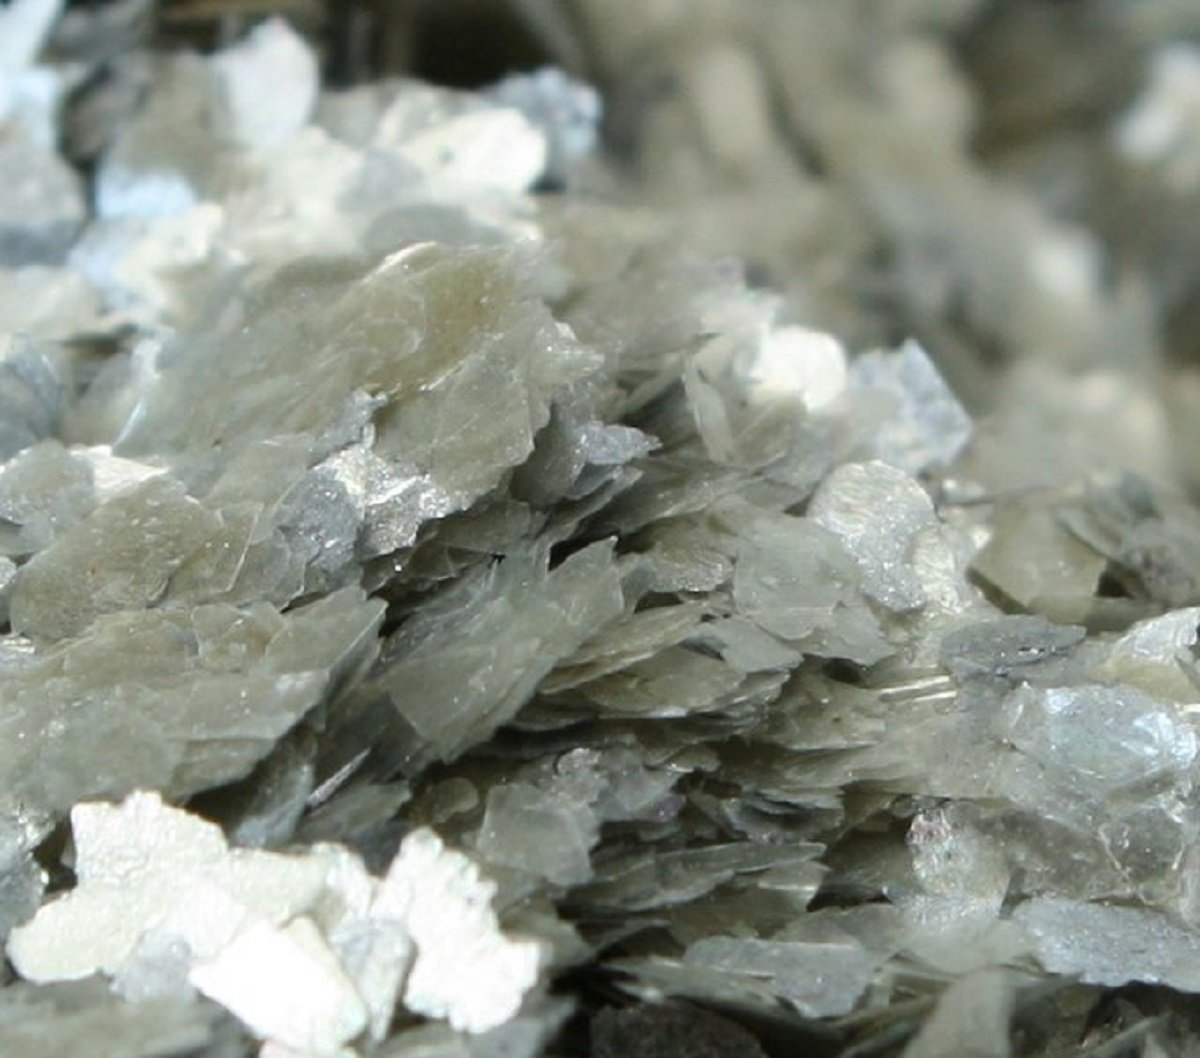 Meyer Imports Natural Mica Flakes - Silver Med - 4 oz - #311-4321 by Meyer Imports (Image #3)